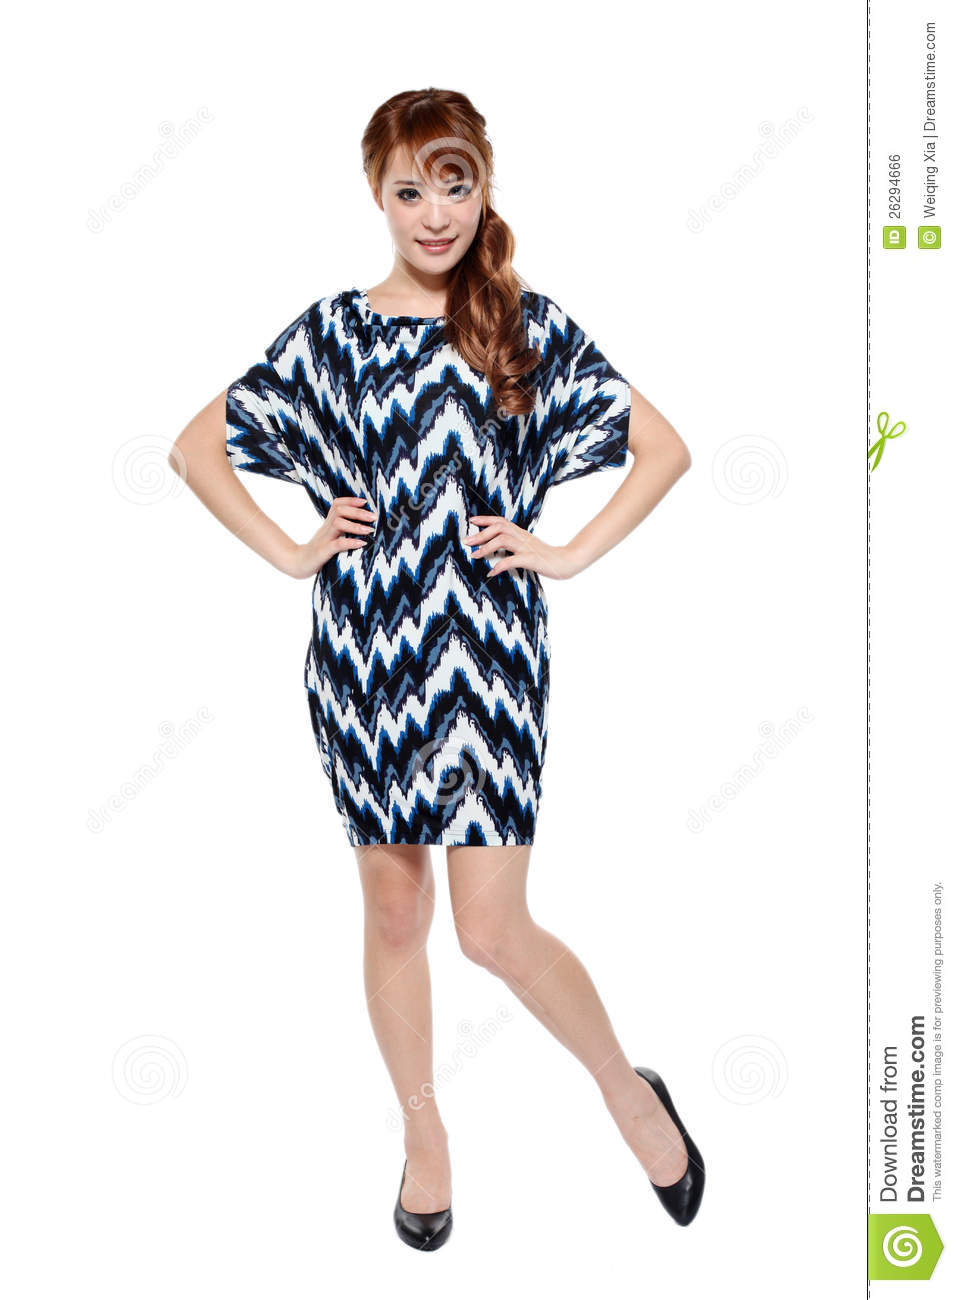 Royalty free stock photo 171 search results 171 black models picture